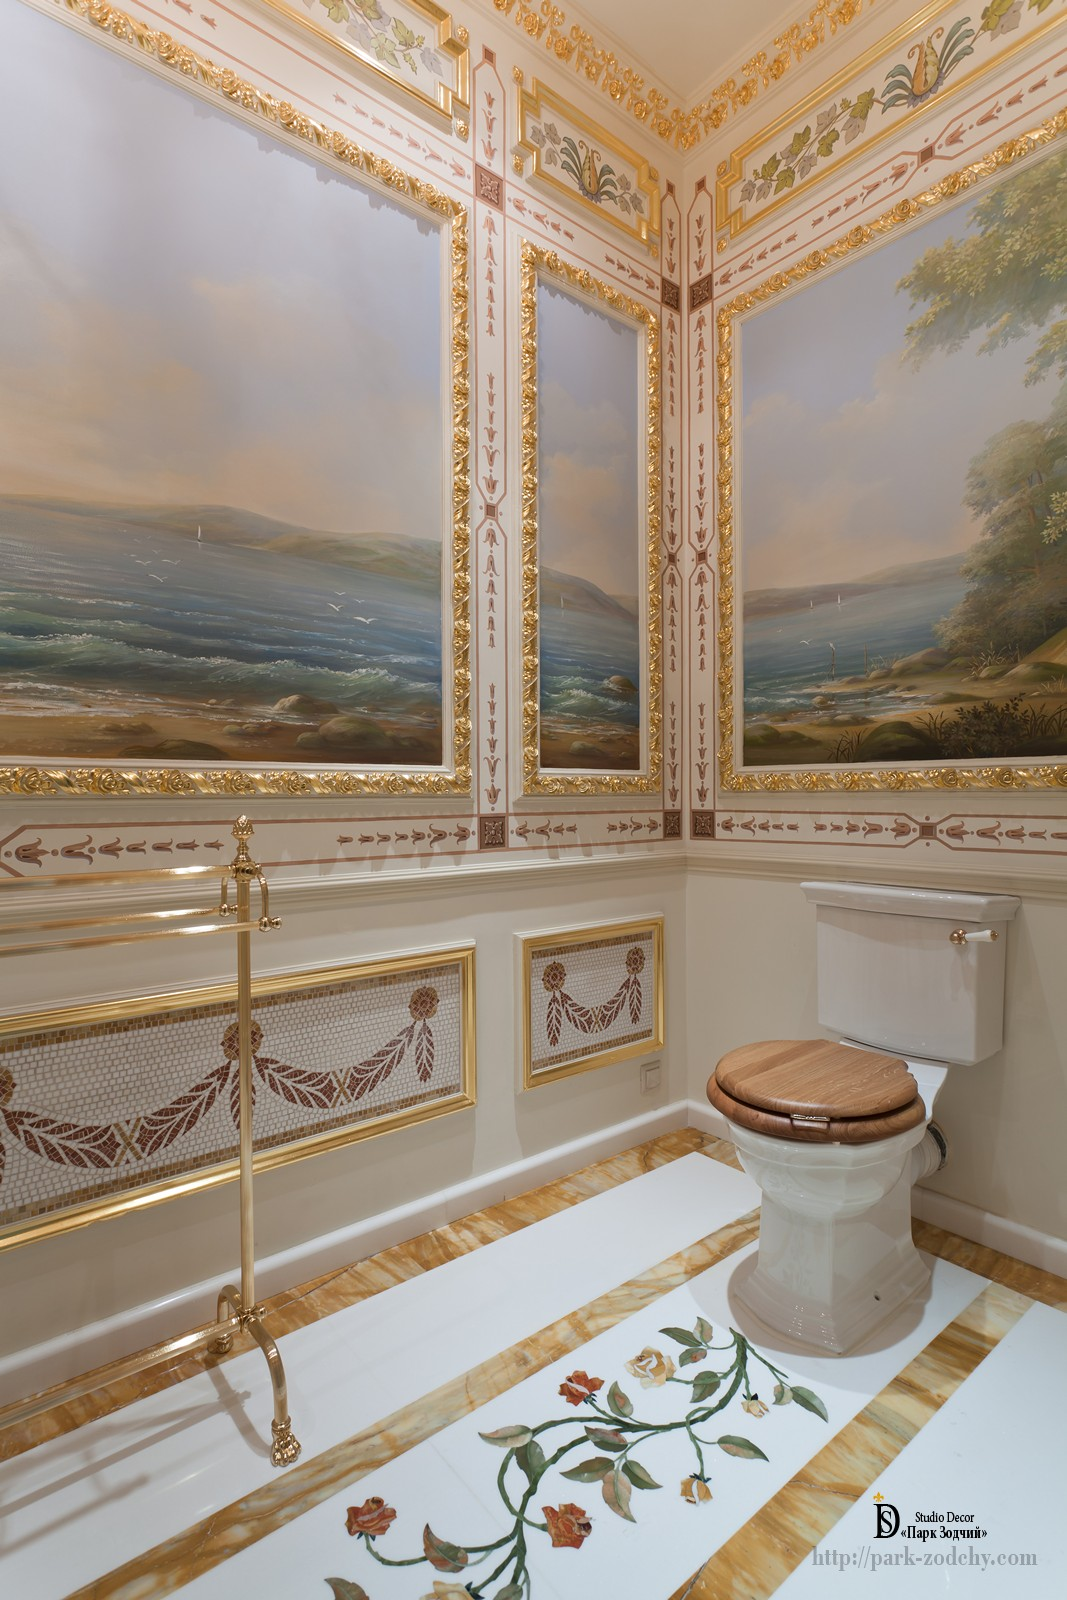 Bathroom with bidet, painted and gilded stucco